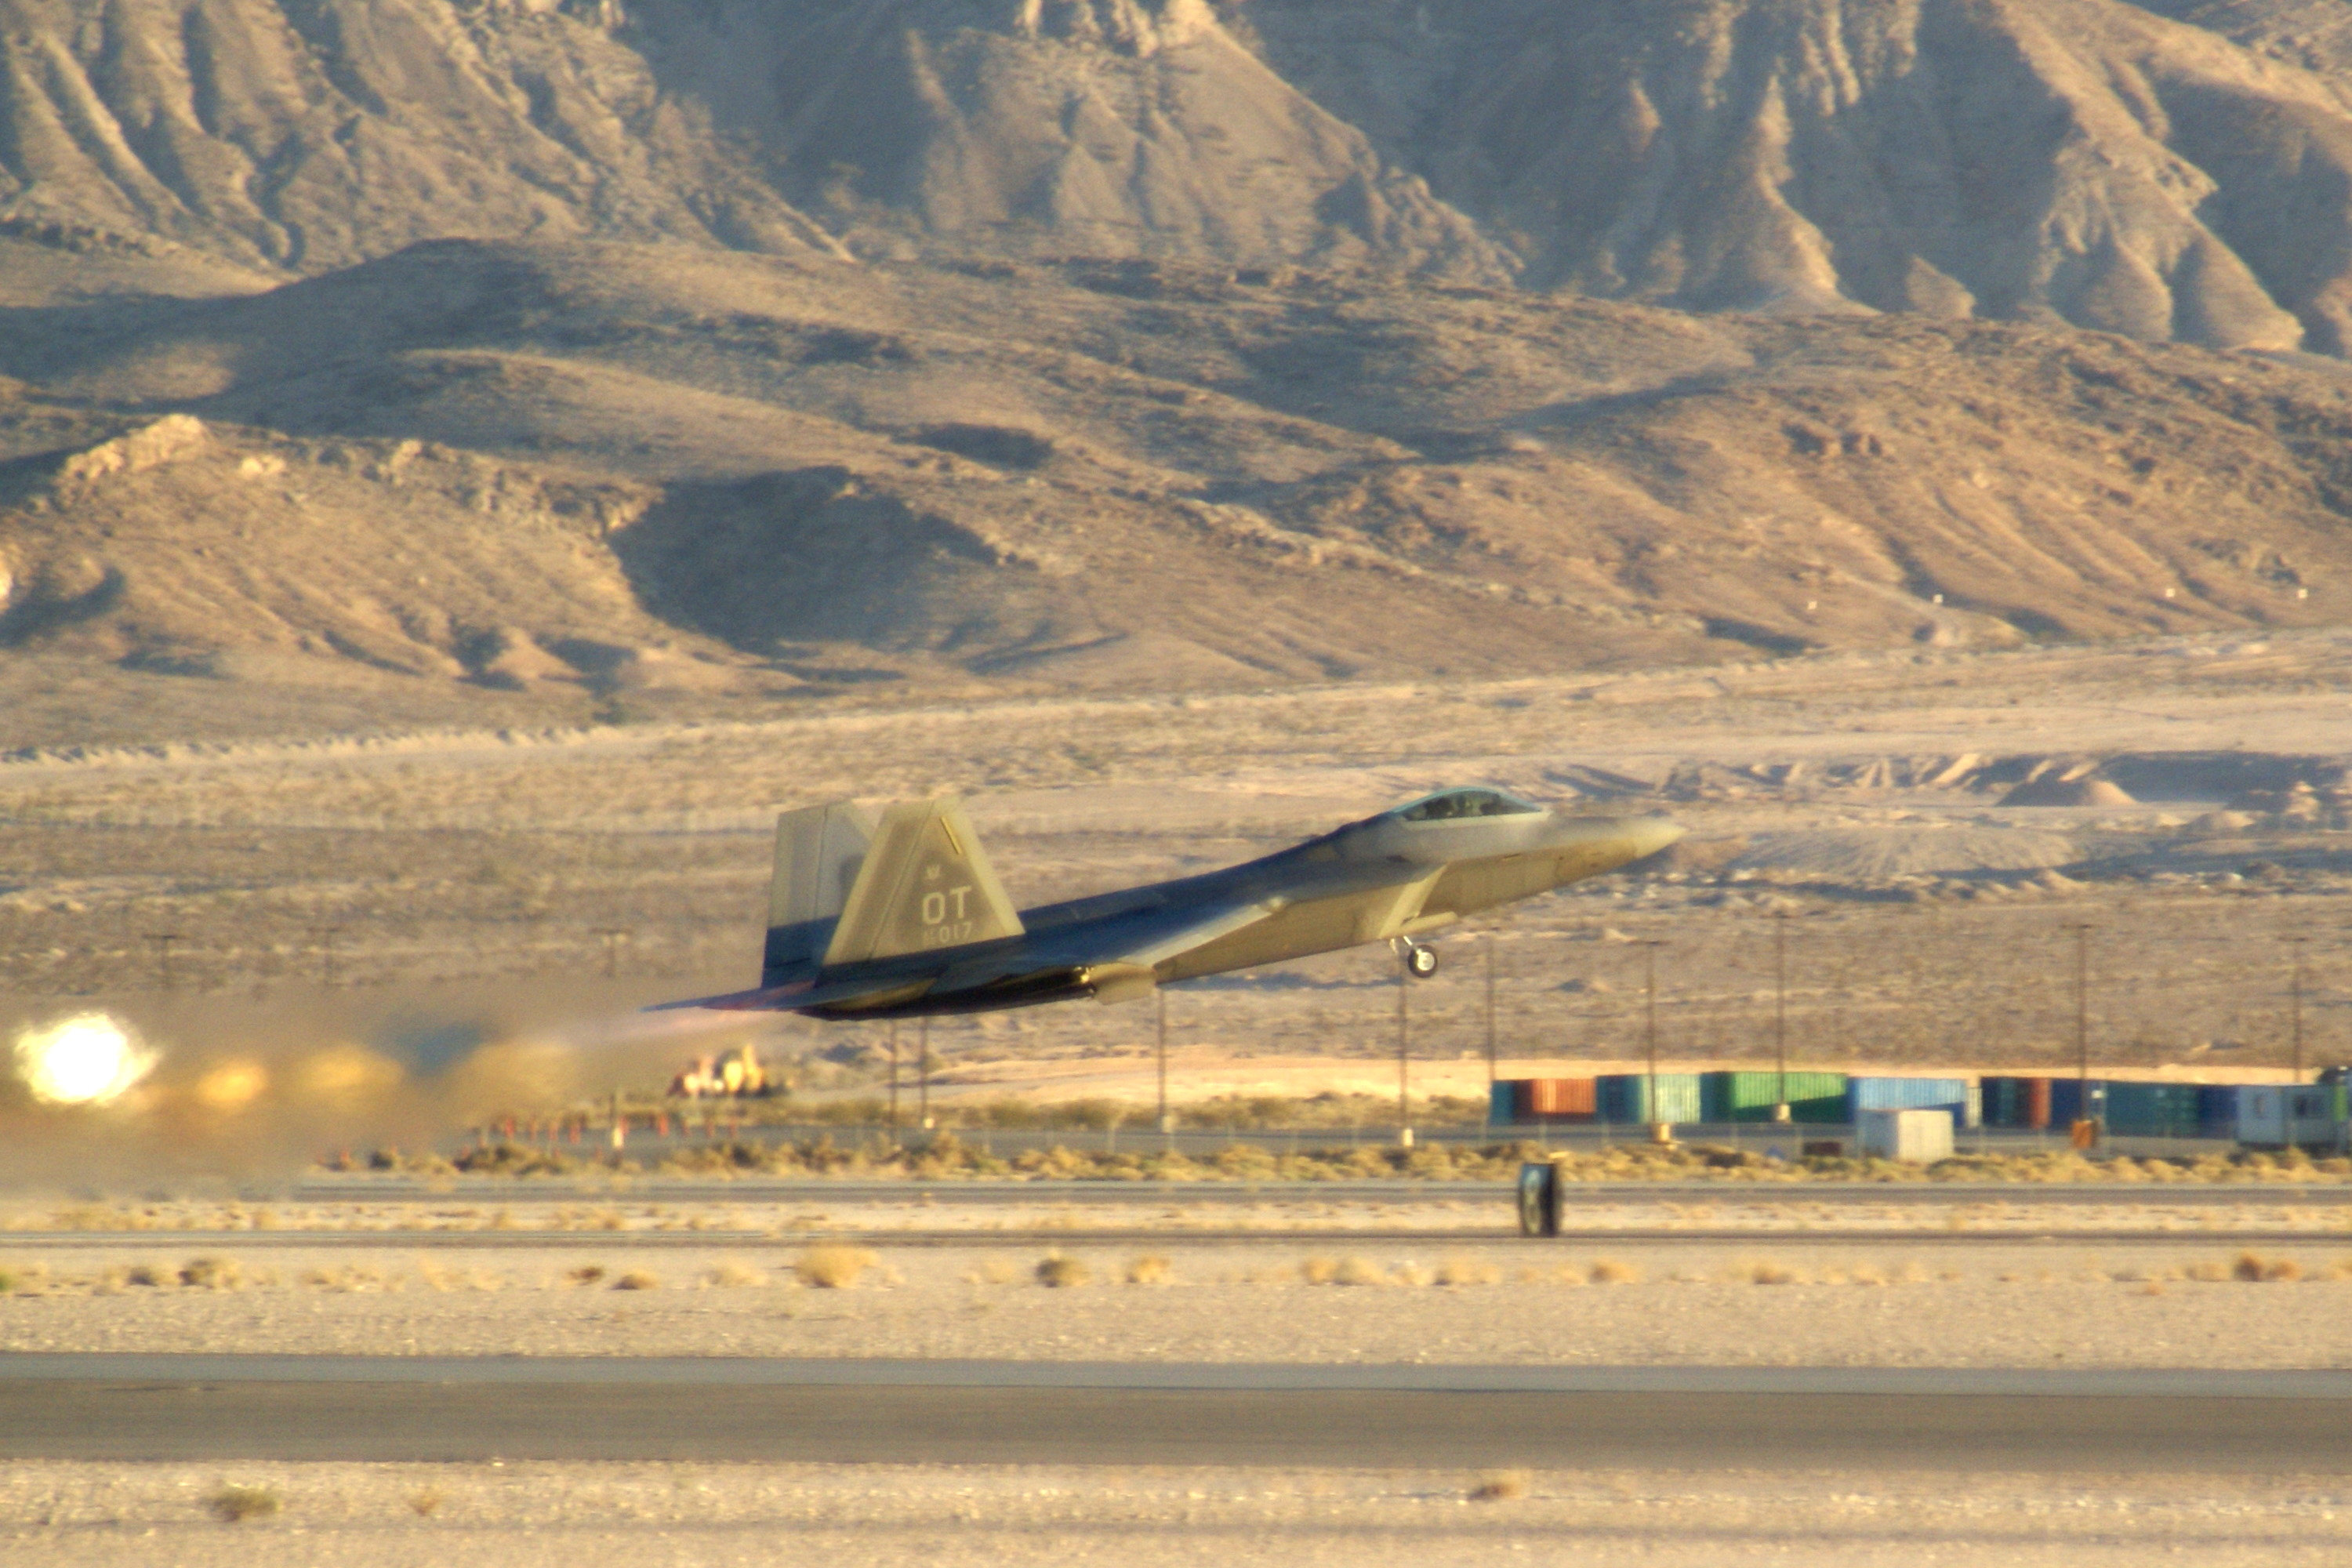 nellis afb singles Basic allowance for housing rates are is calculated on local rents in nellis afb/las vegas which is located in the military housing area nv212.